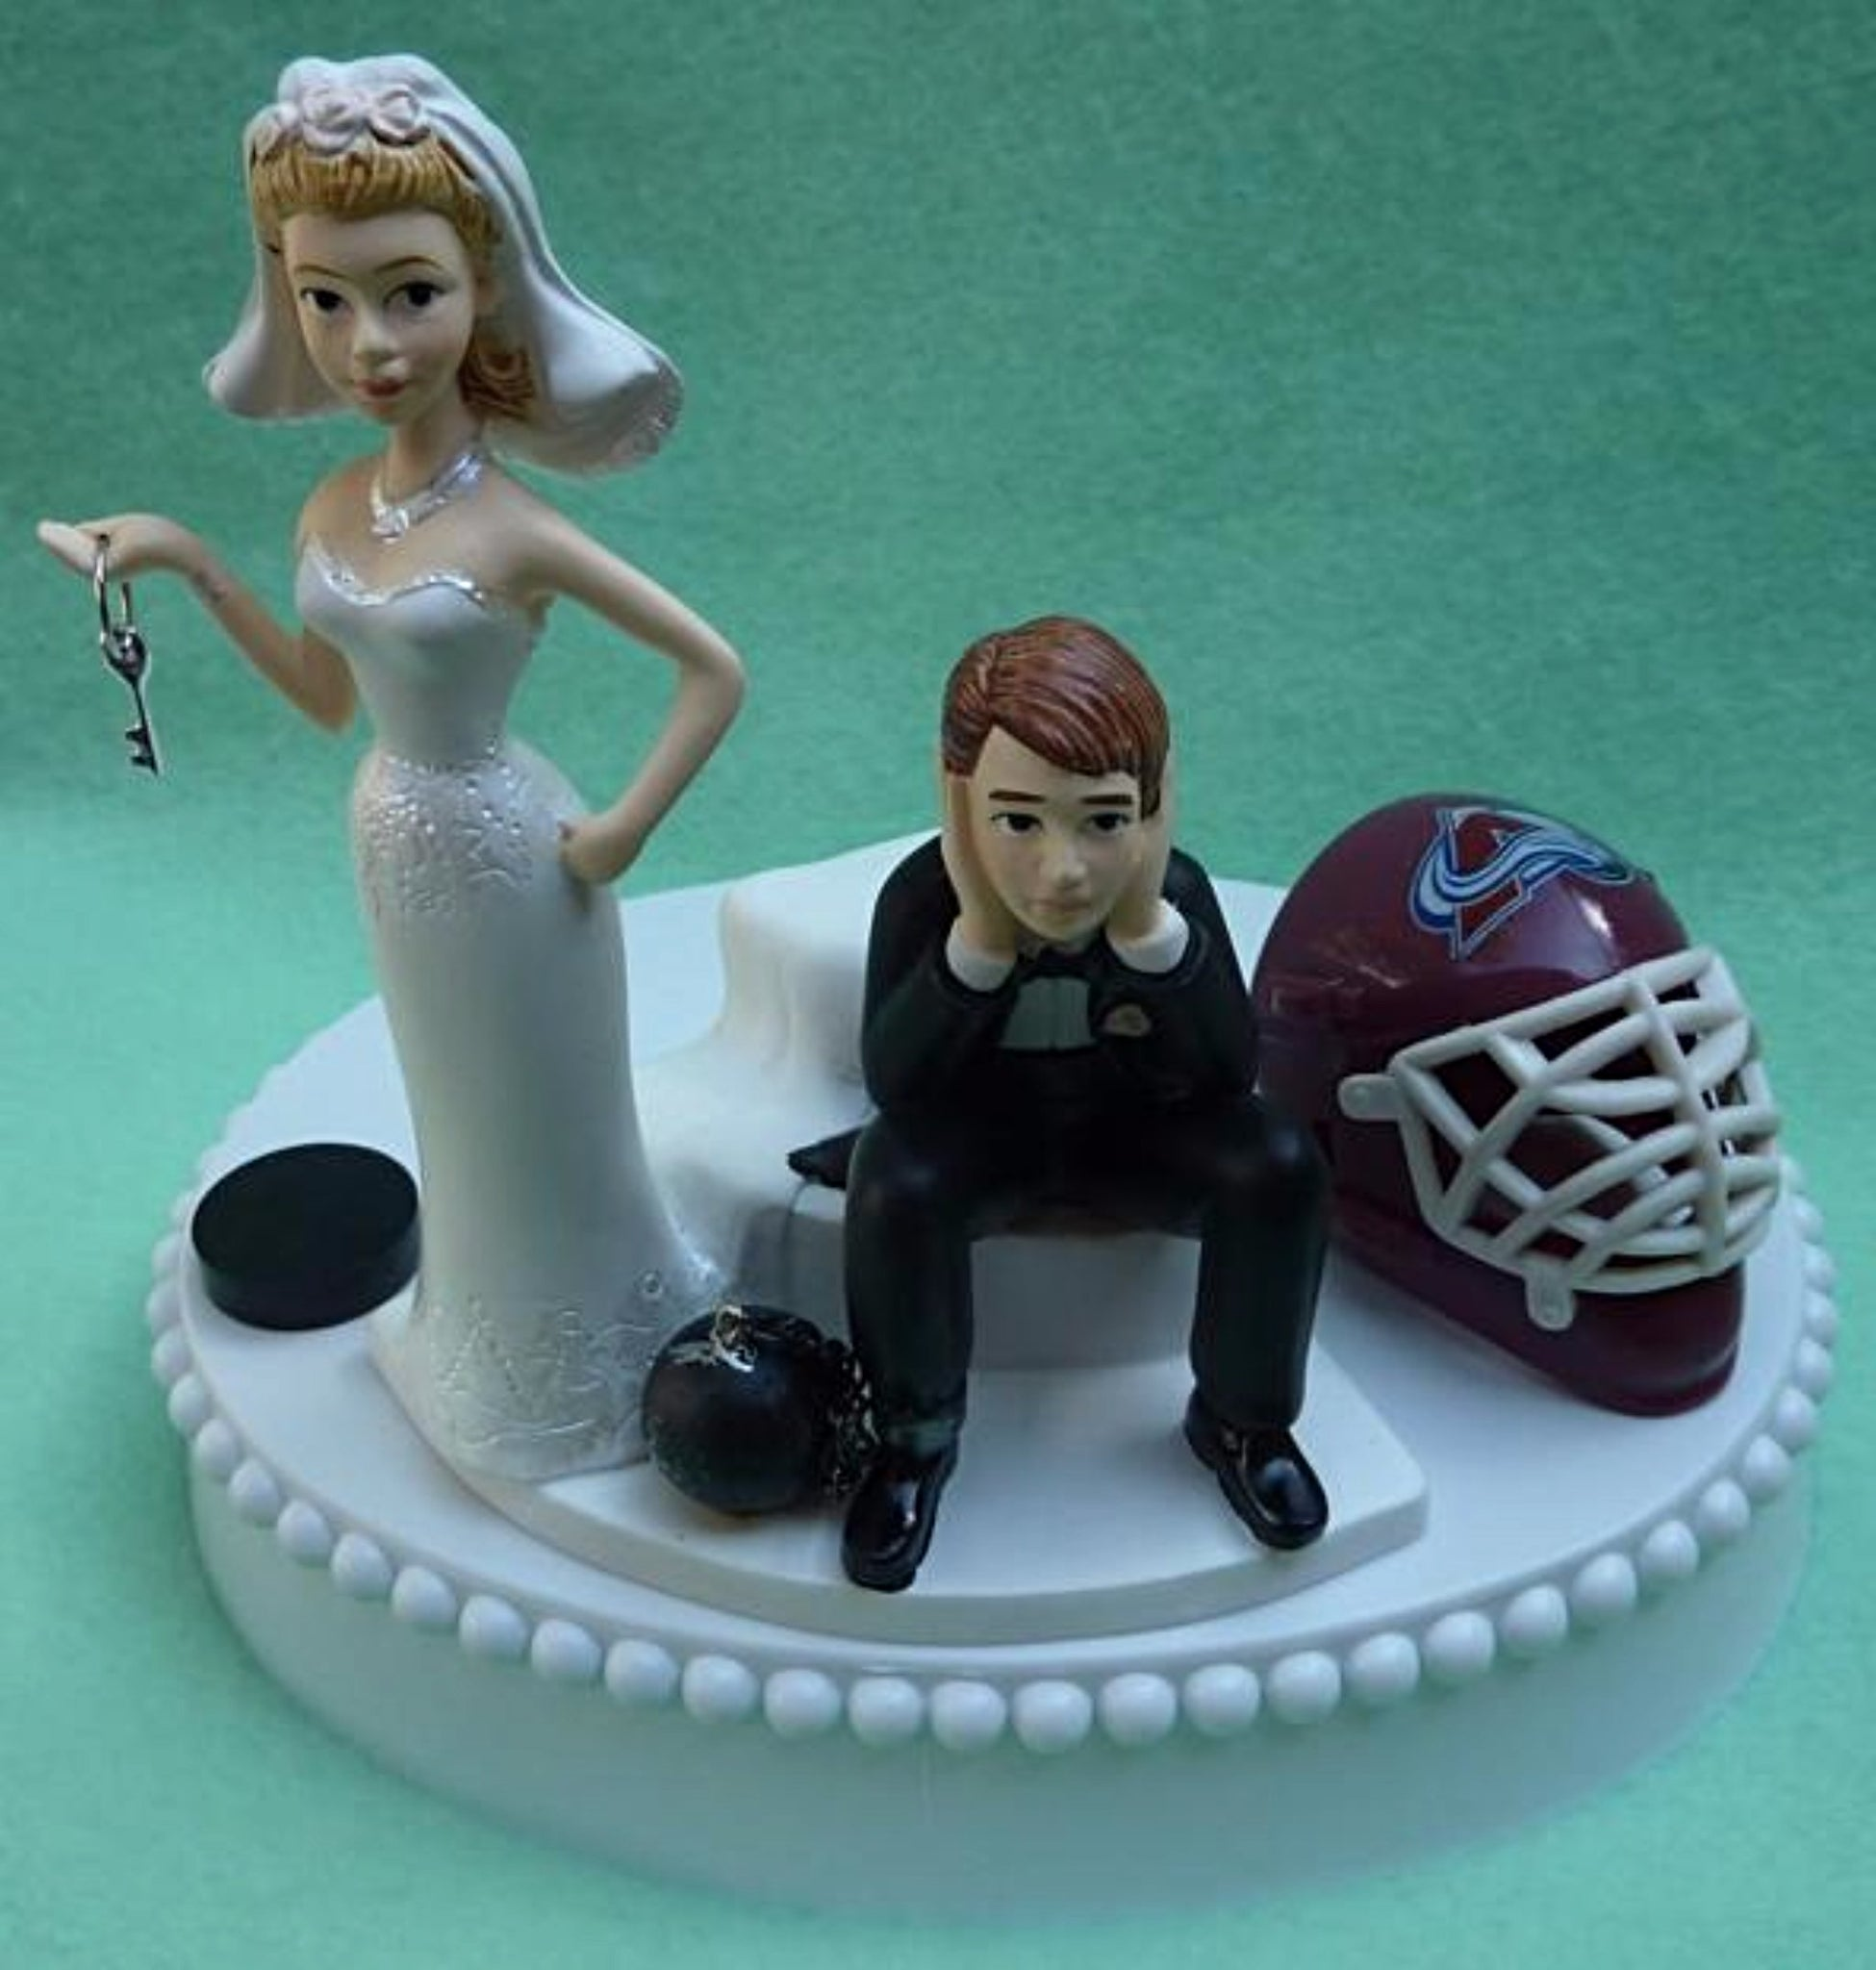 Wedding Cake Topper - Colorado Avalanche Hockey Themed Key Avs